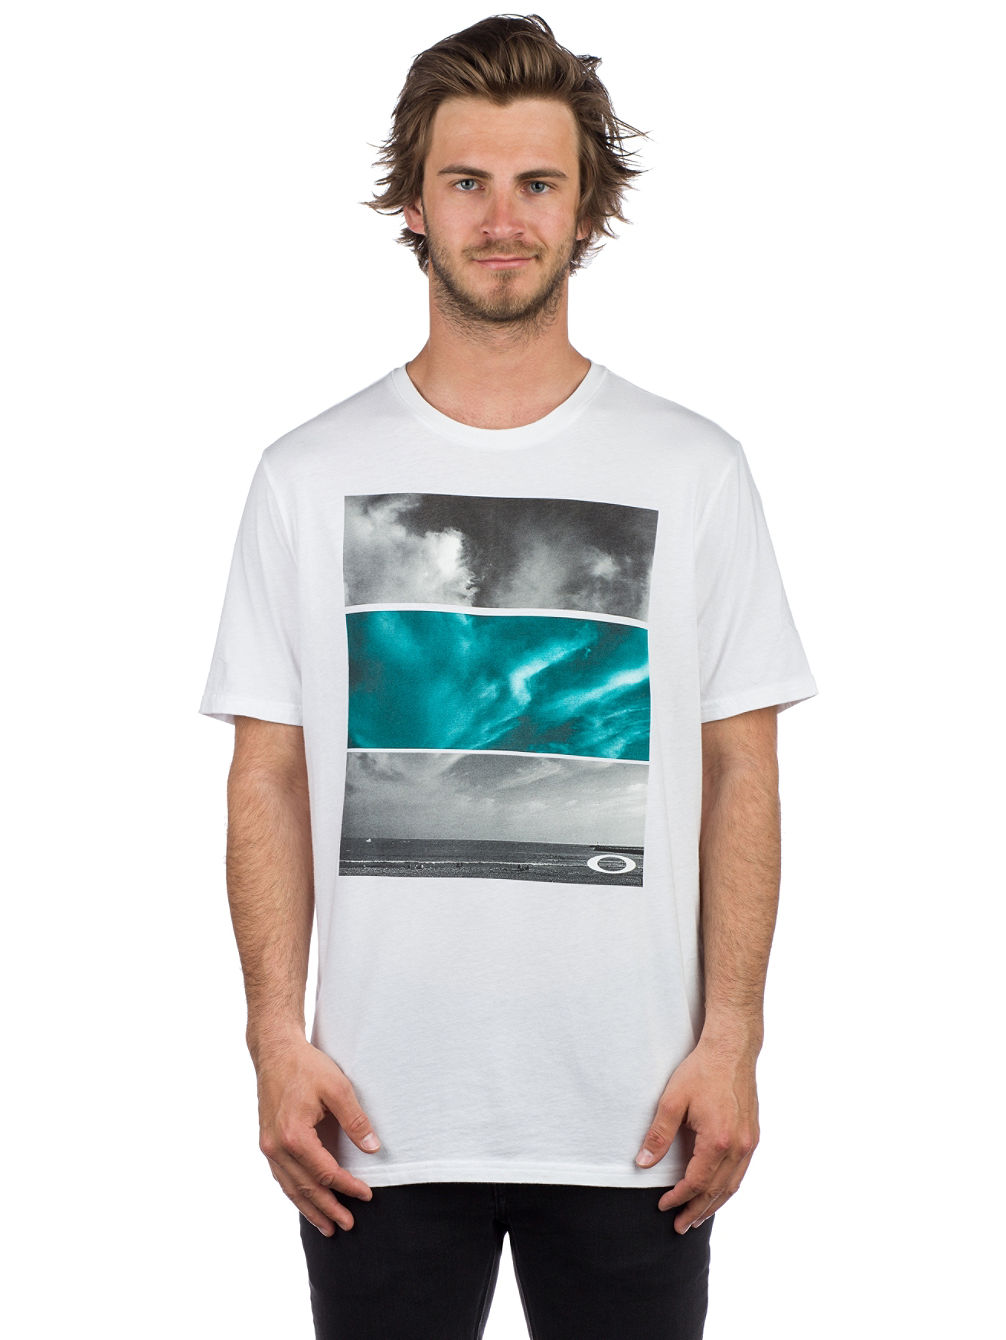 50-In The Clouds T-Shirt